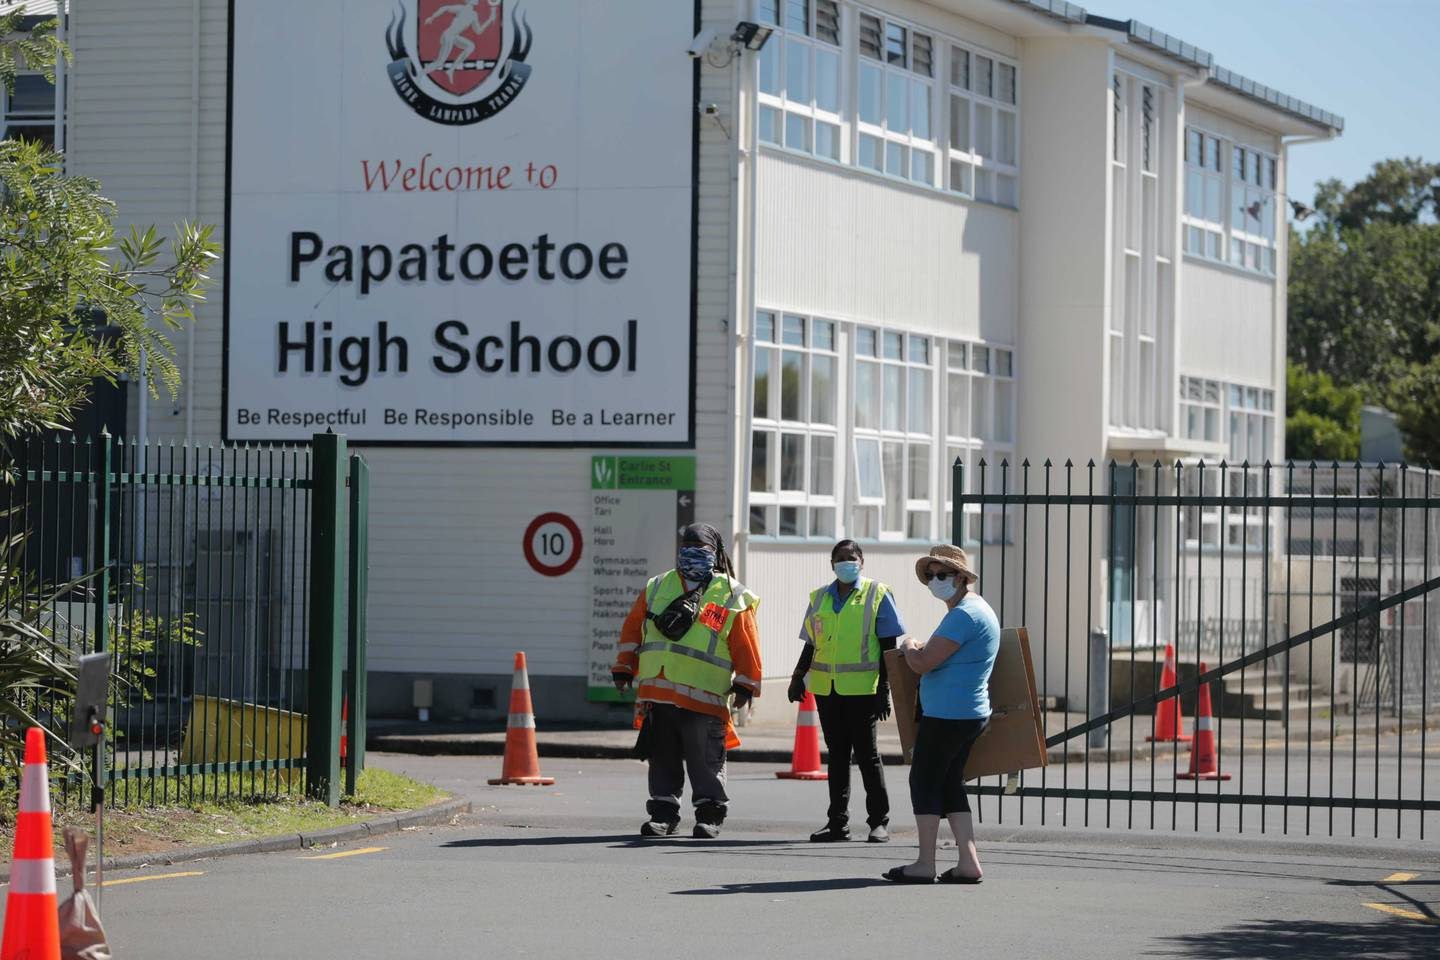 Papatoetoe High school in Auckland. Photo: NZ Herald